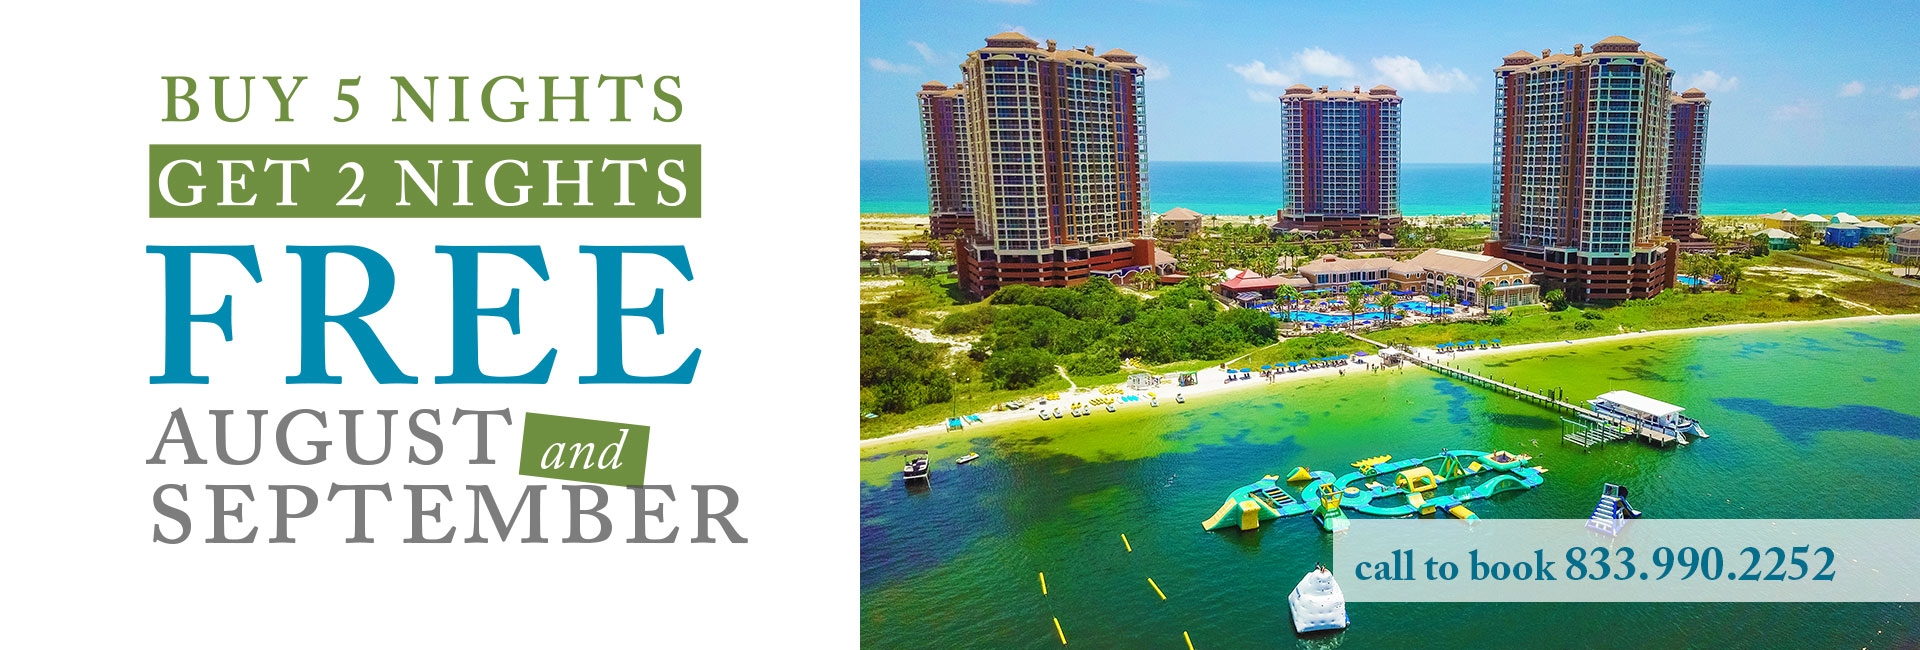 Empty Beach chairs on the gulf - Now accepting reservations for stays beginning today - buy 5 nights get 2 free in  August & September